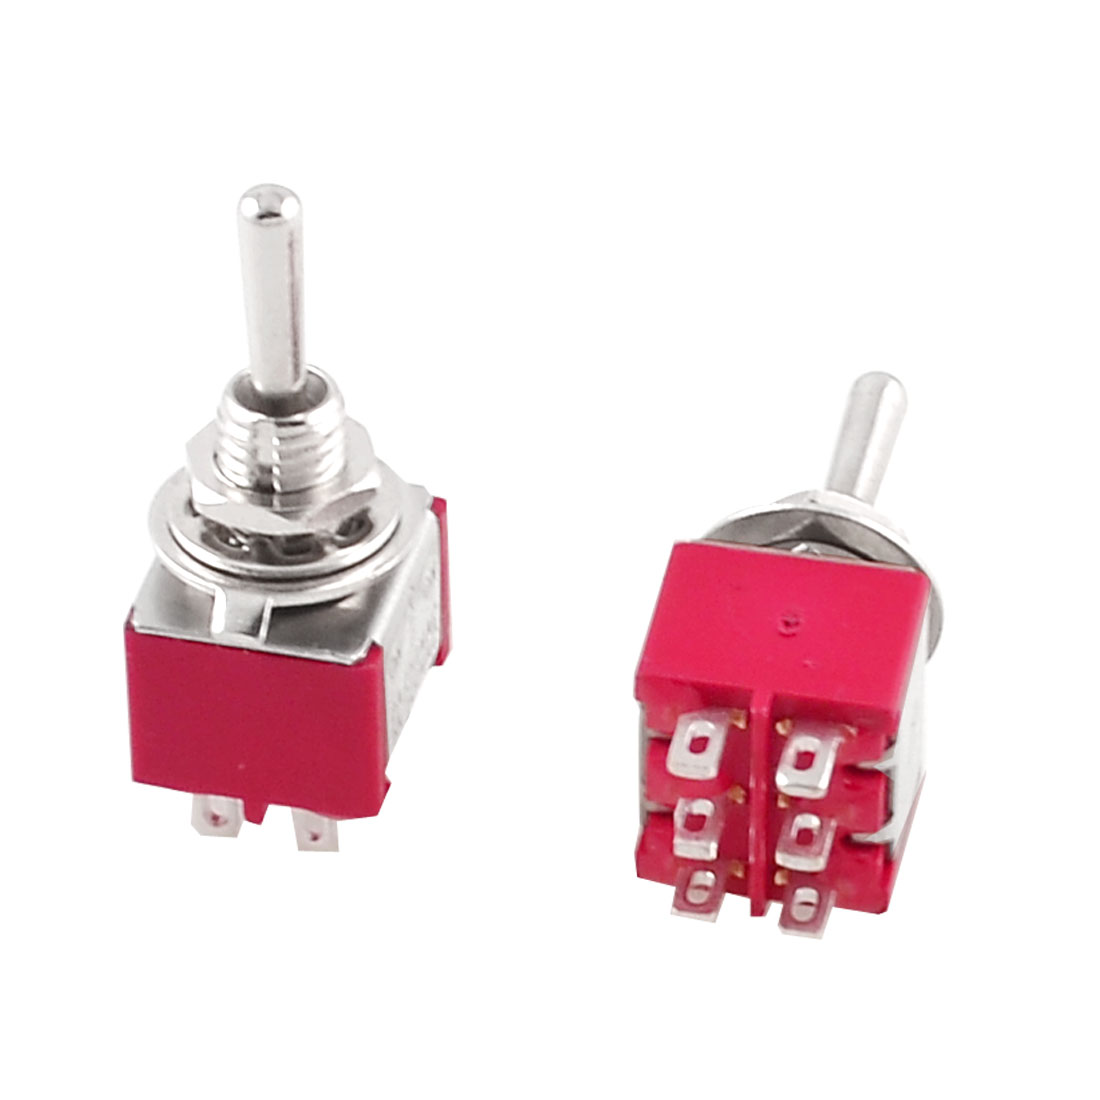 Red 5A/120VAC 2A/250VAC Toggle Switches 3 Position DPDT 2 Pcs